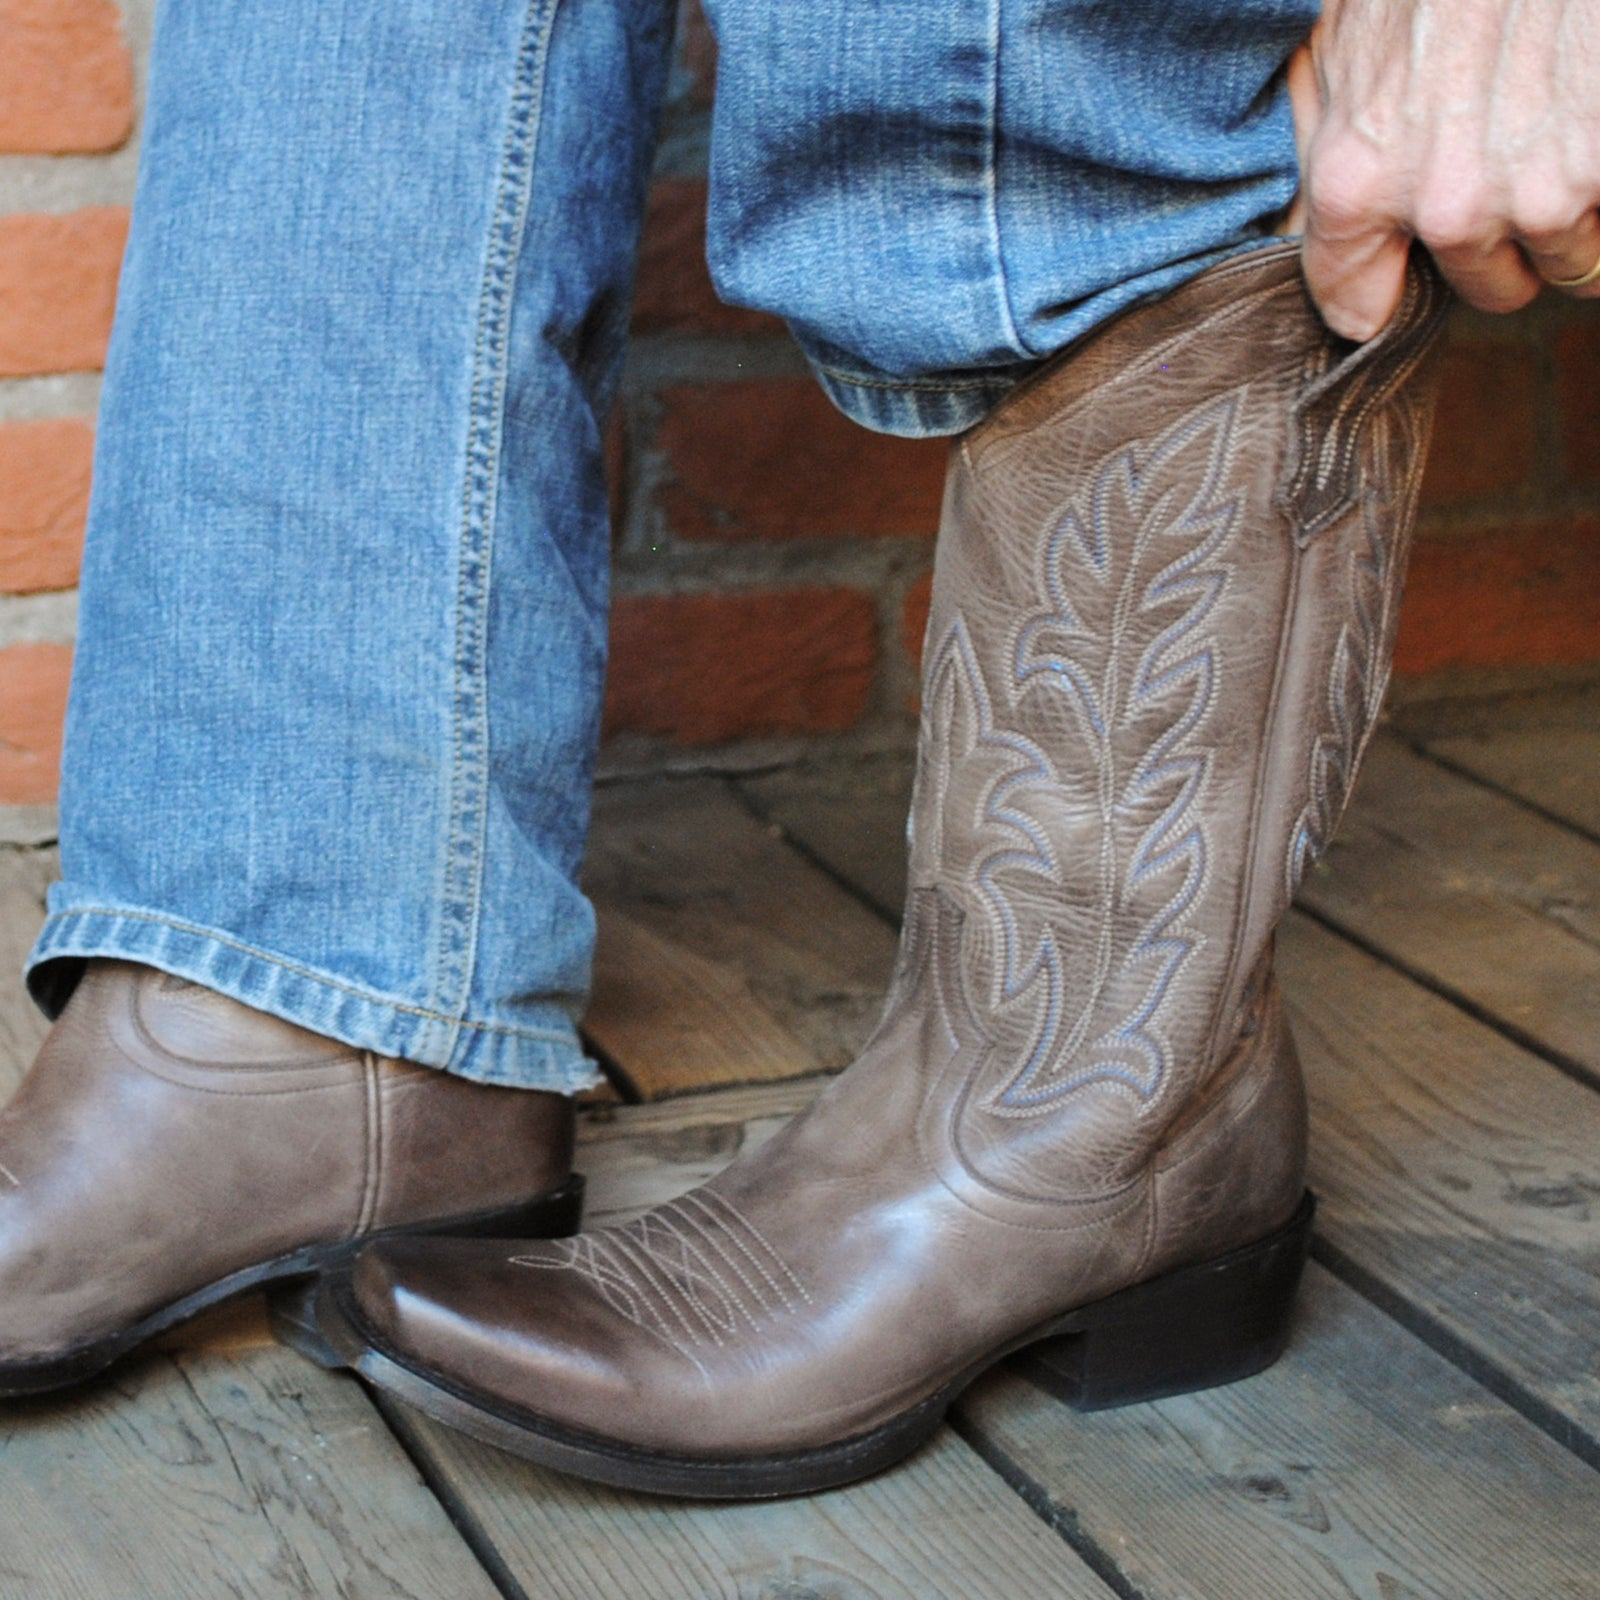 c325f17ddfd Shop for Womens and Mens Leather Boots, Footwear & Accessories